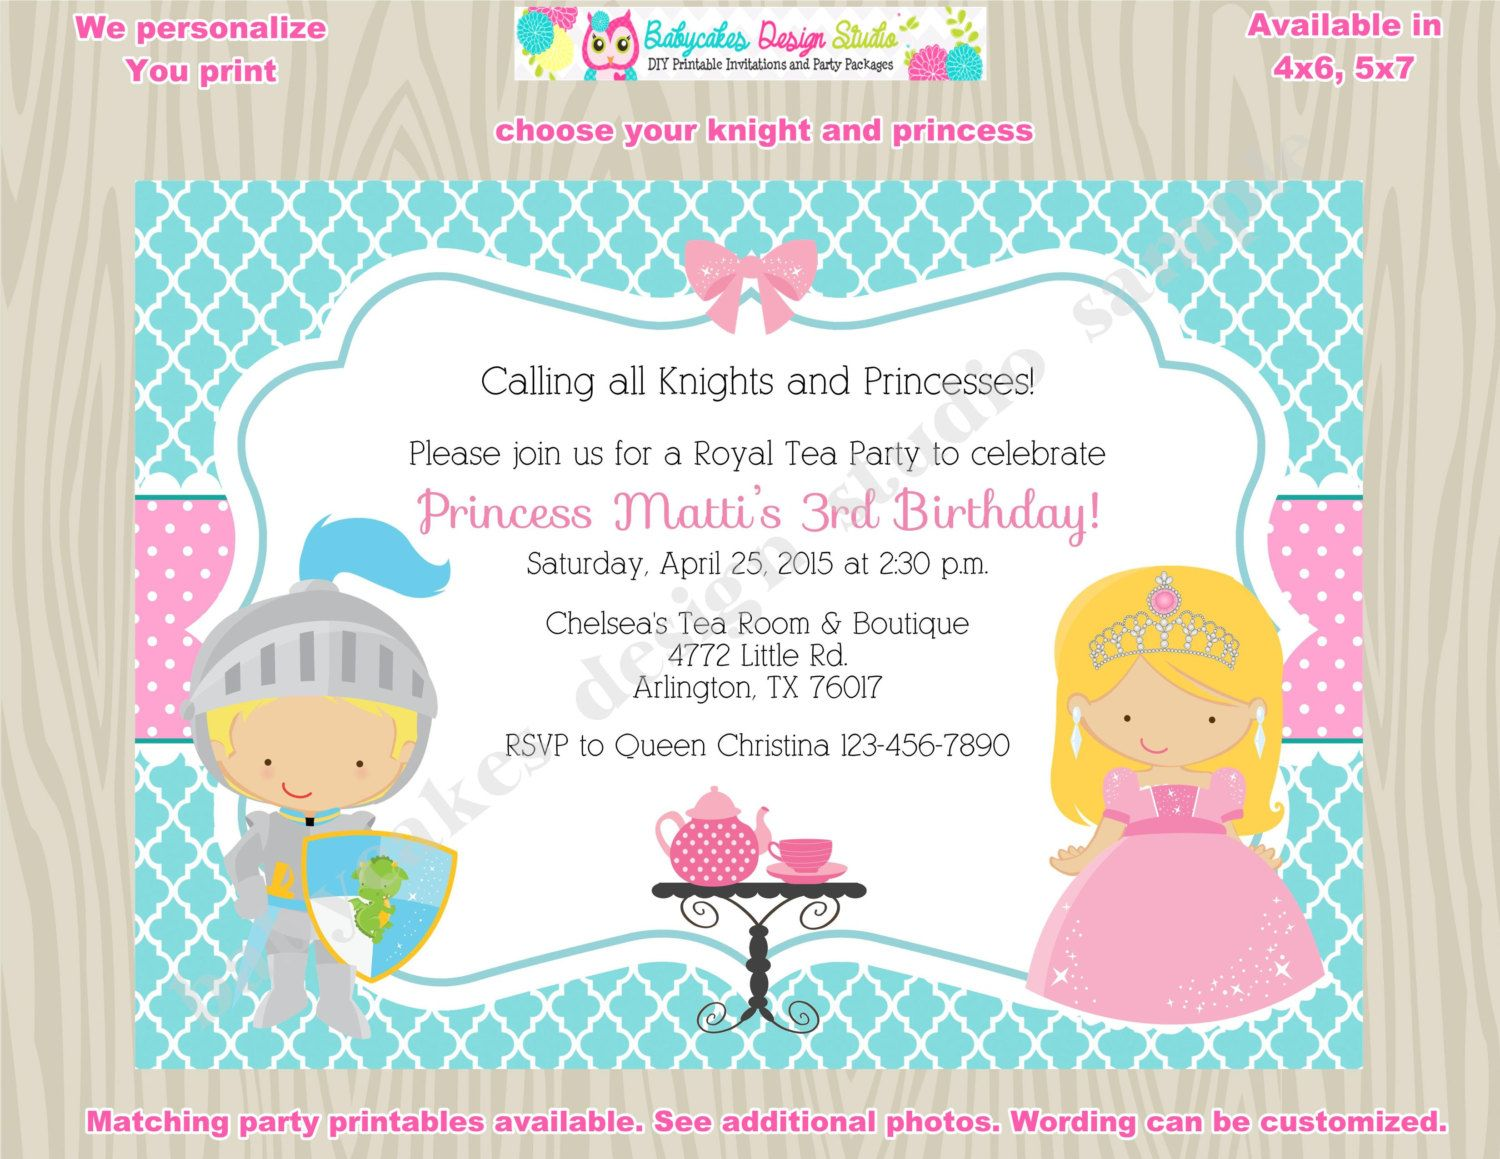 knights and princess tea party invitation Royal Tea Party Birthday ...